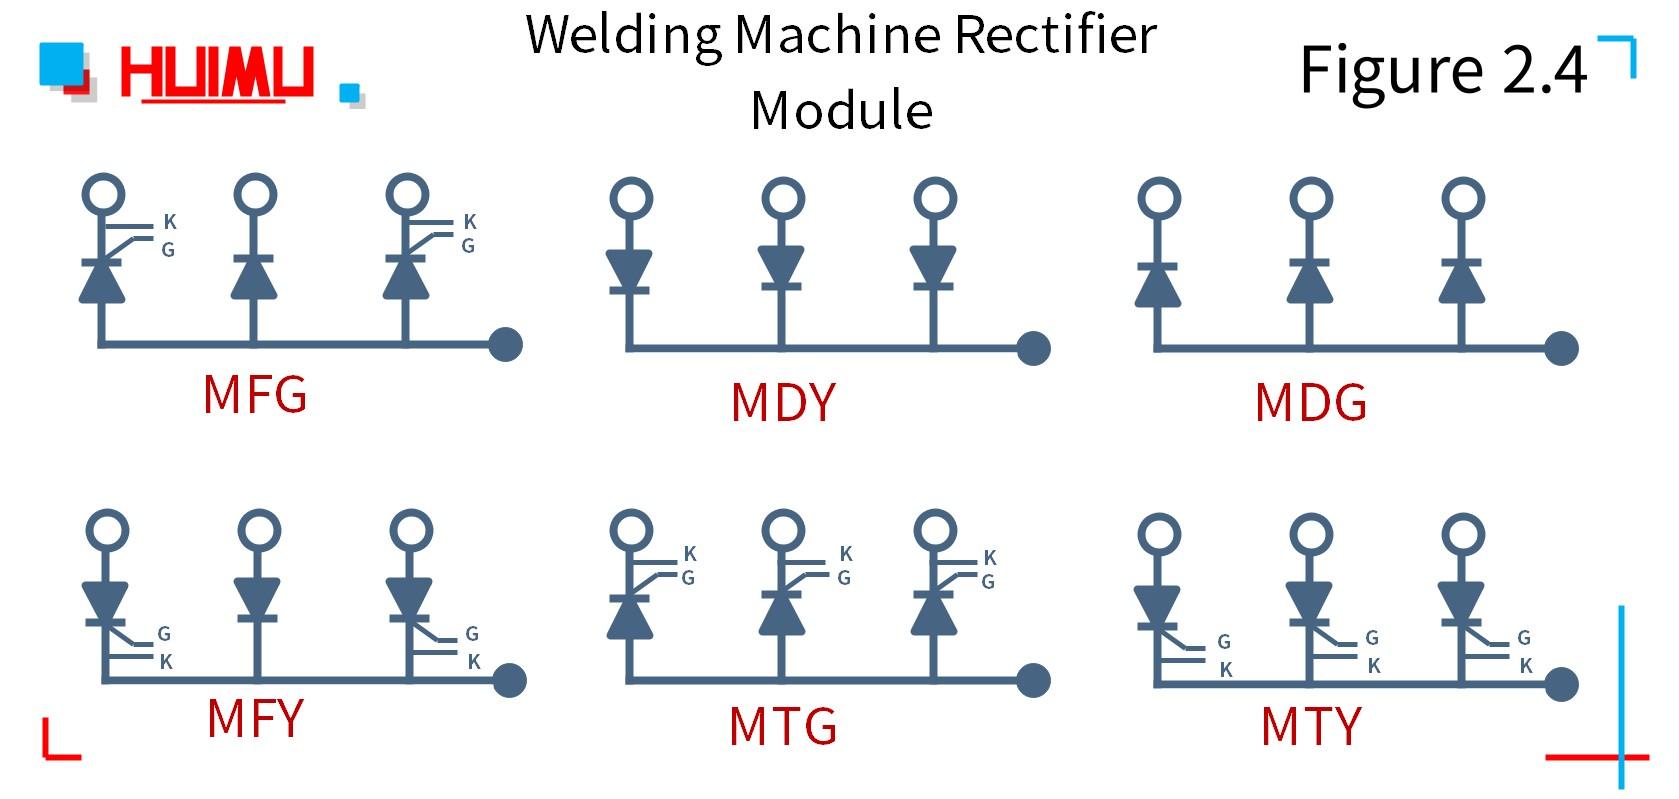 MGR_mager_welding_machine_rectifier_citcuit_wiring_diagram